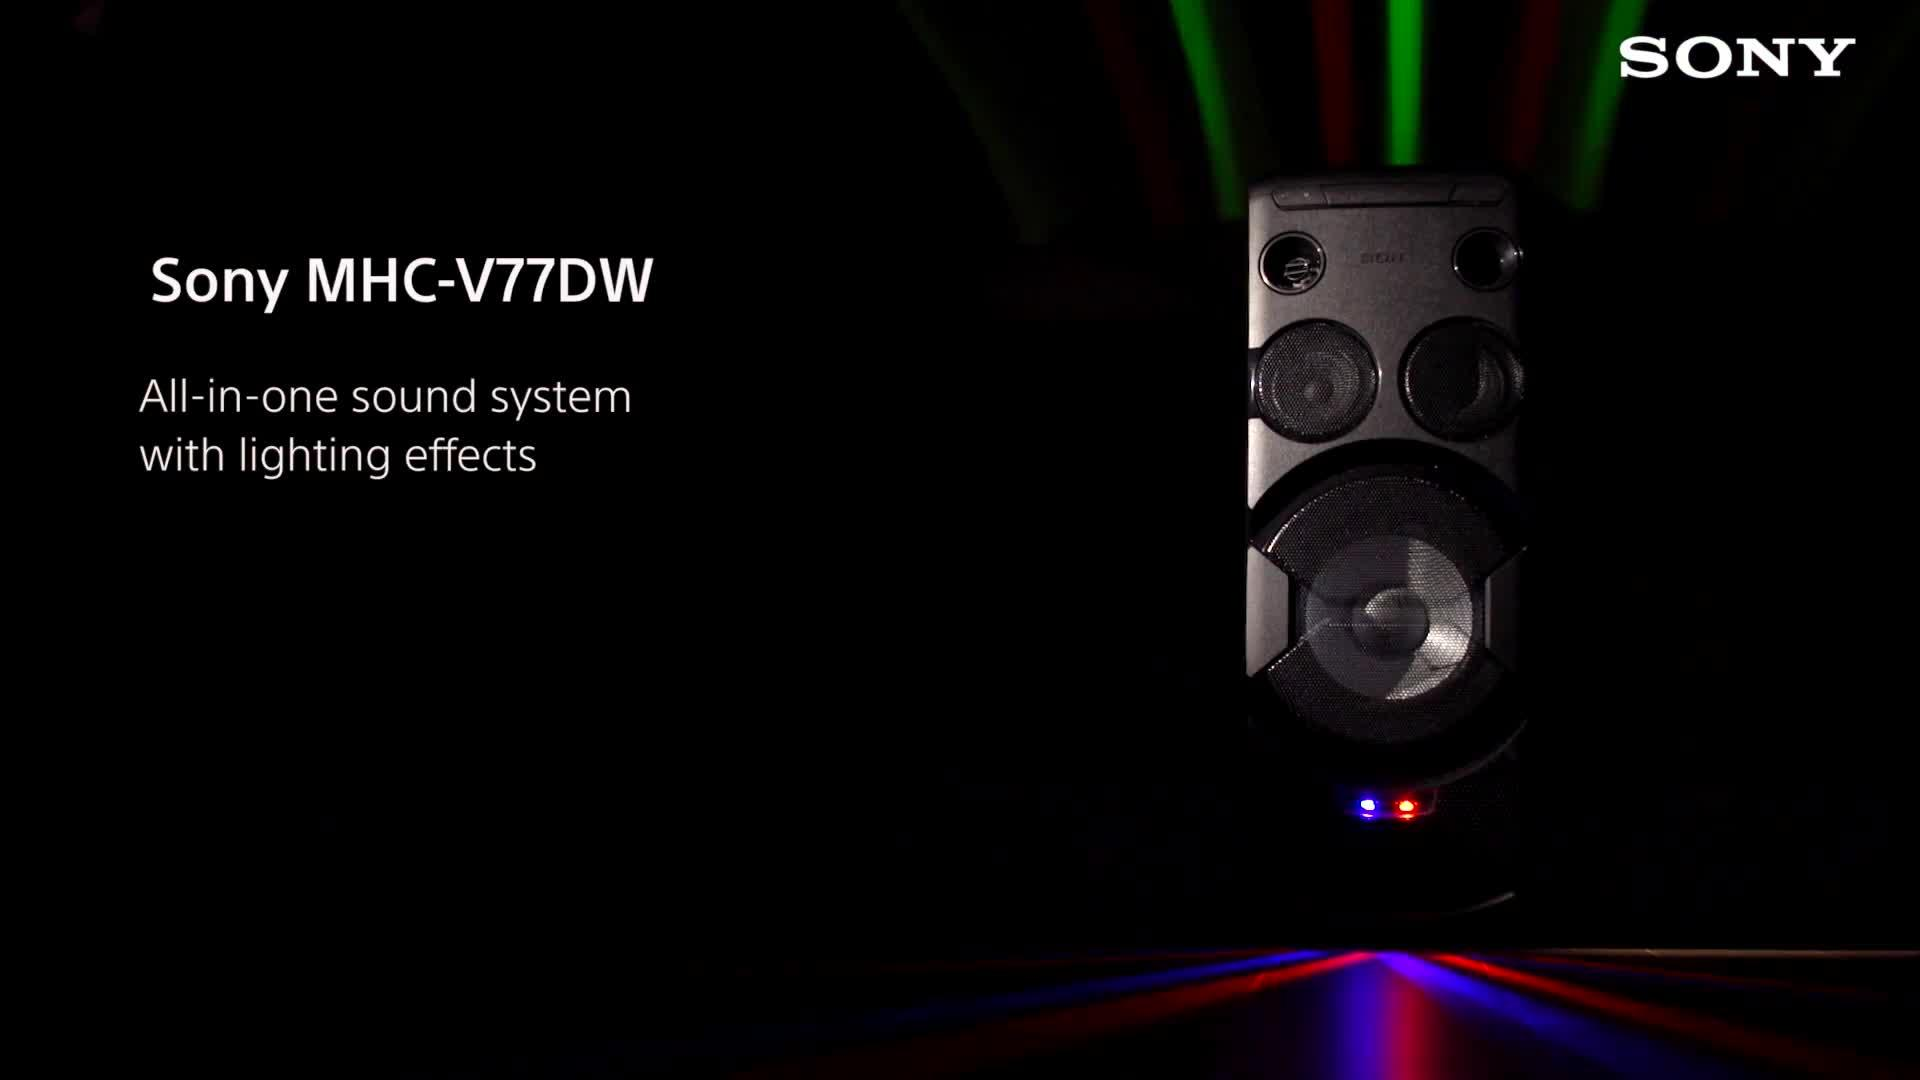 Wireless bluetooth hi fi system for home mhc v7d sony uk - Sony Mhc V77dw High Power Home Audio System With Bluetooth And Wi